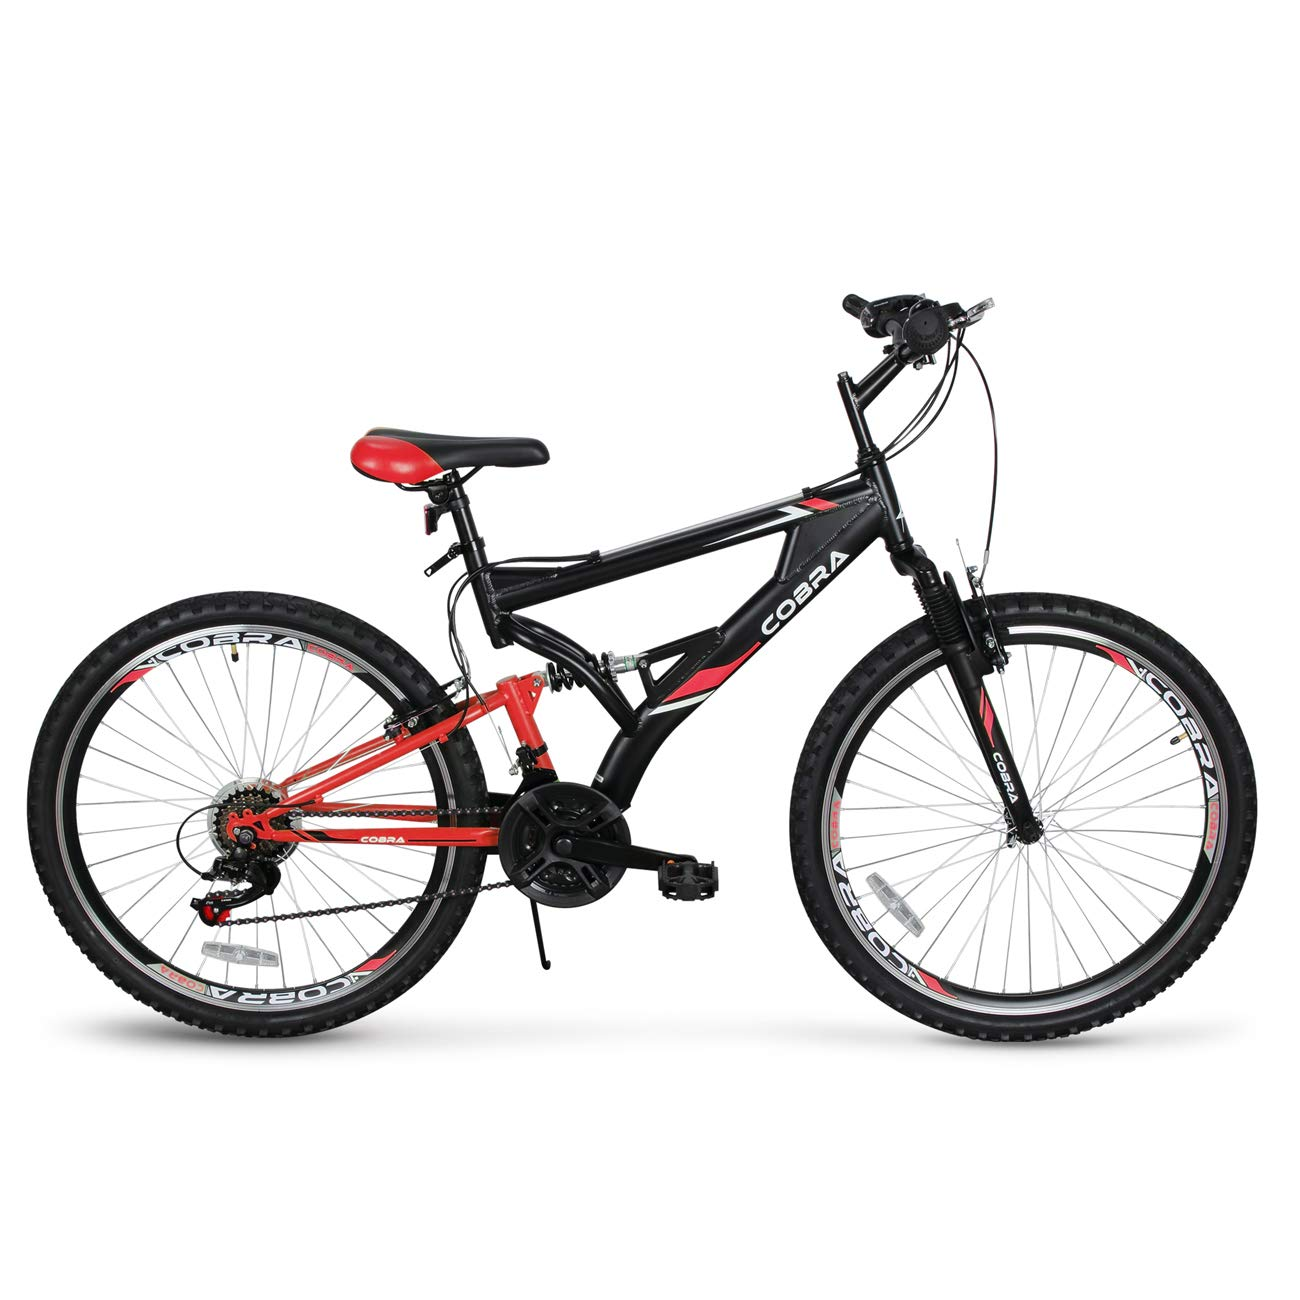 "Akonza Cobra 26"" Mountain Bicycle"